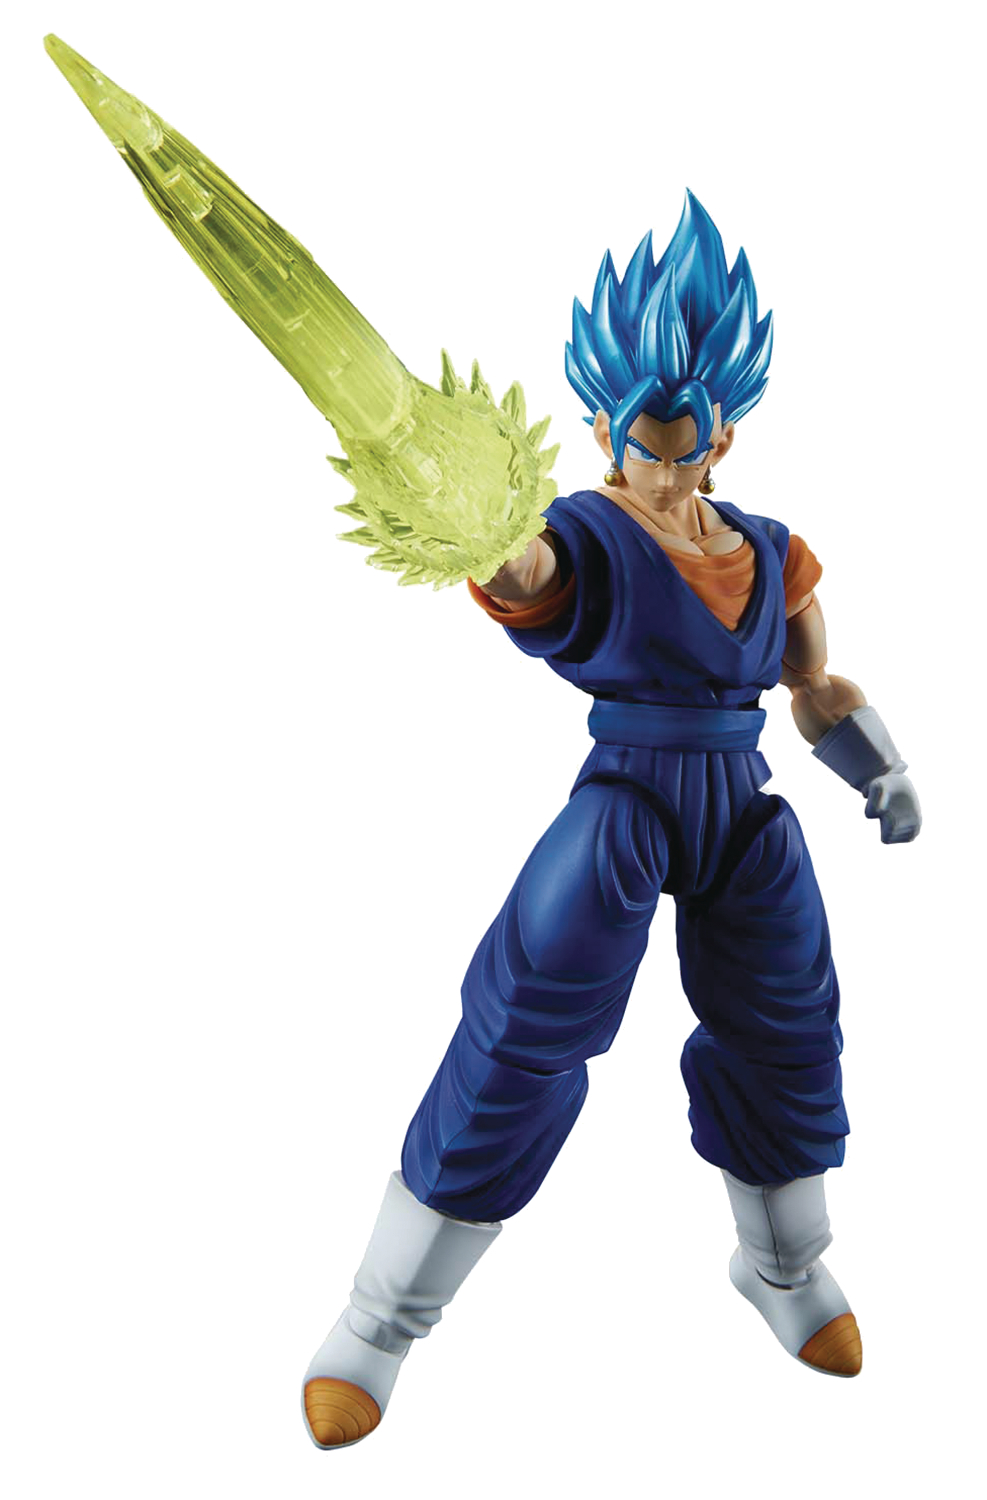 DBZ SUPER SAIYAN GOD SUPER SAIYAN VEGETTO FIG-RISE MDL KIT (